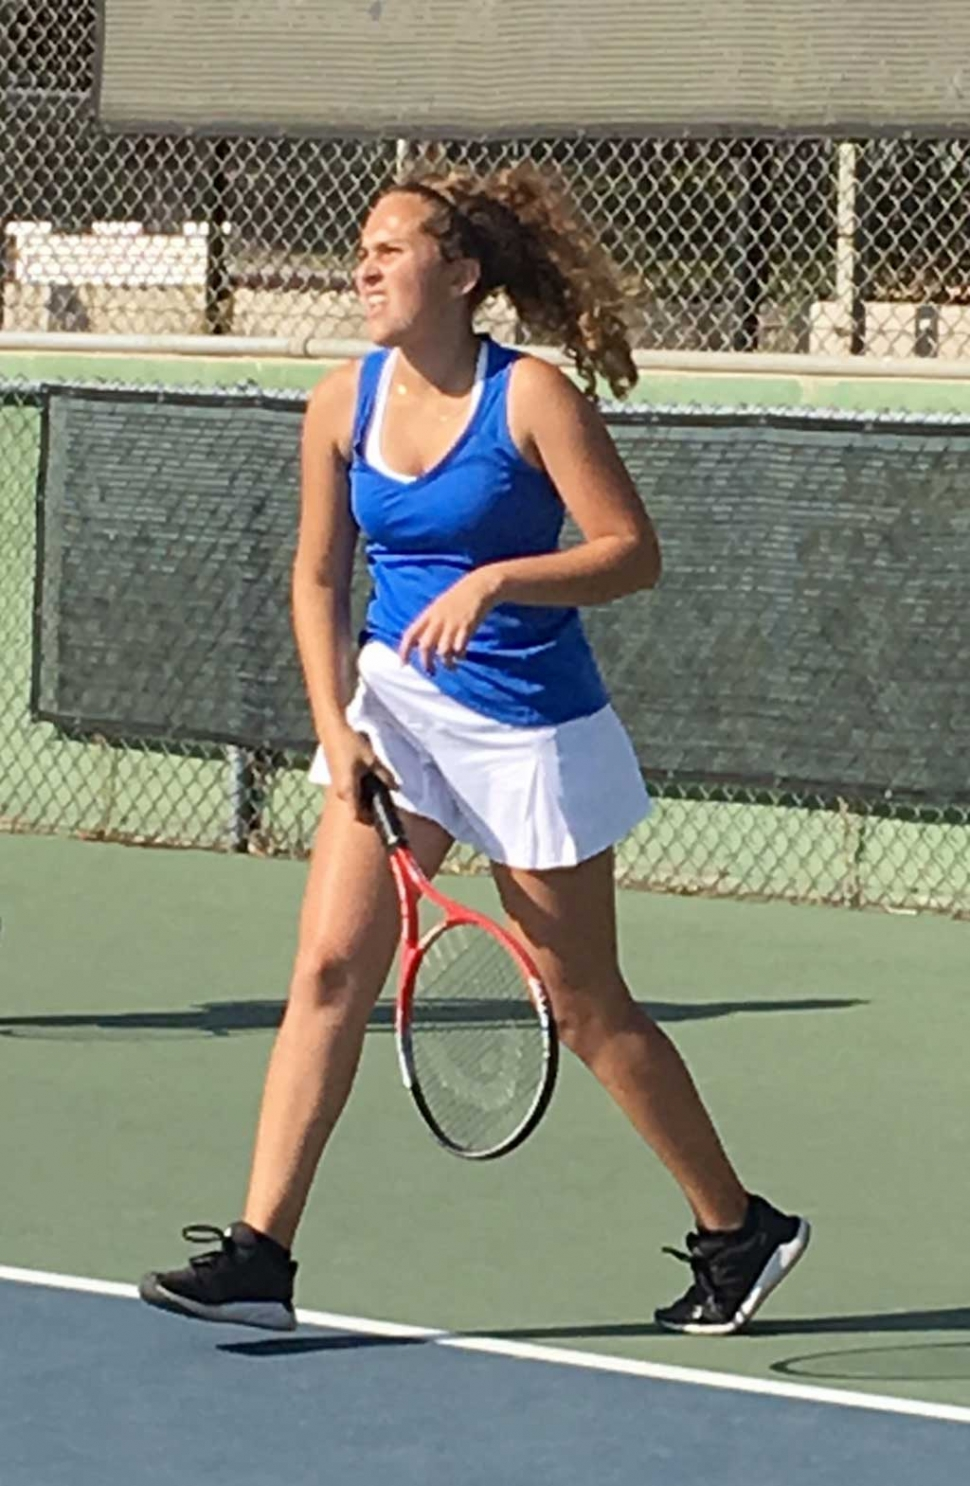 Fillmore's girls tennis player as she warms up before the match against Santa Paula.